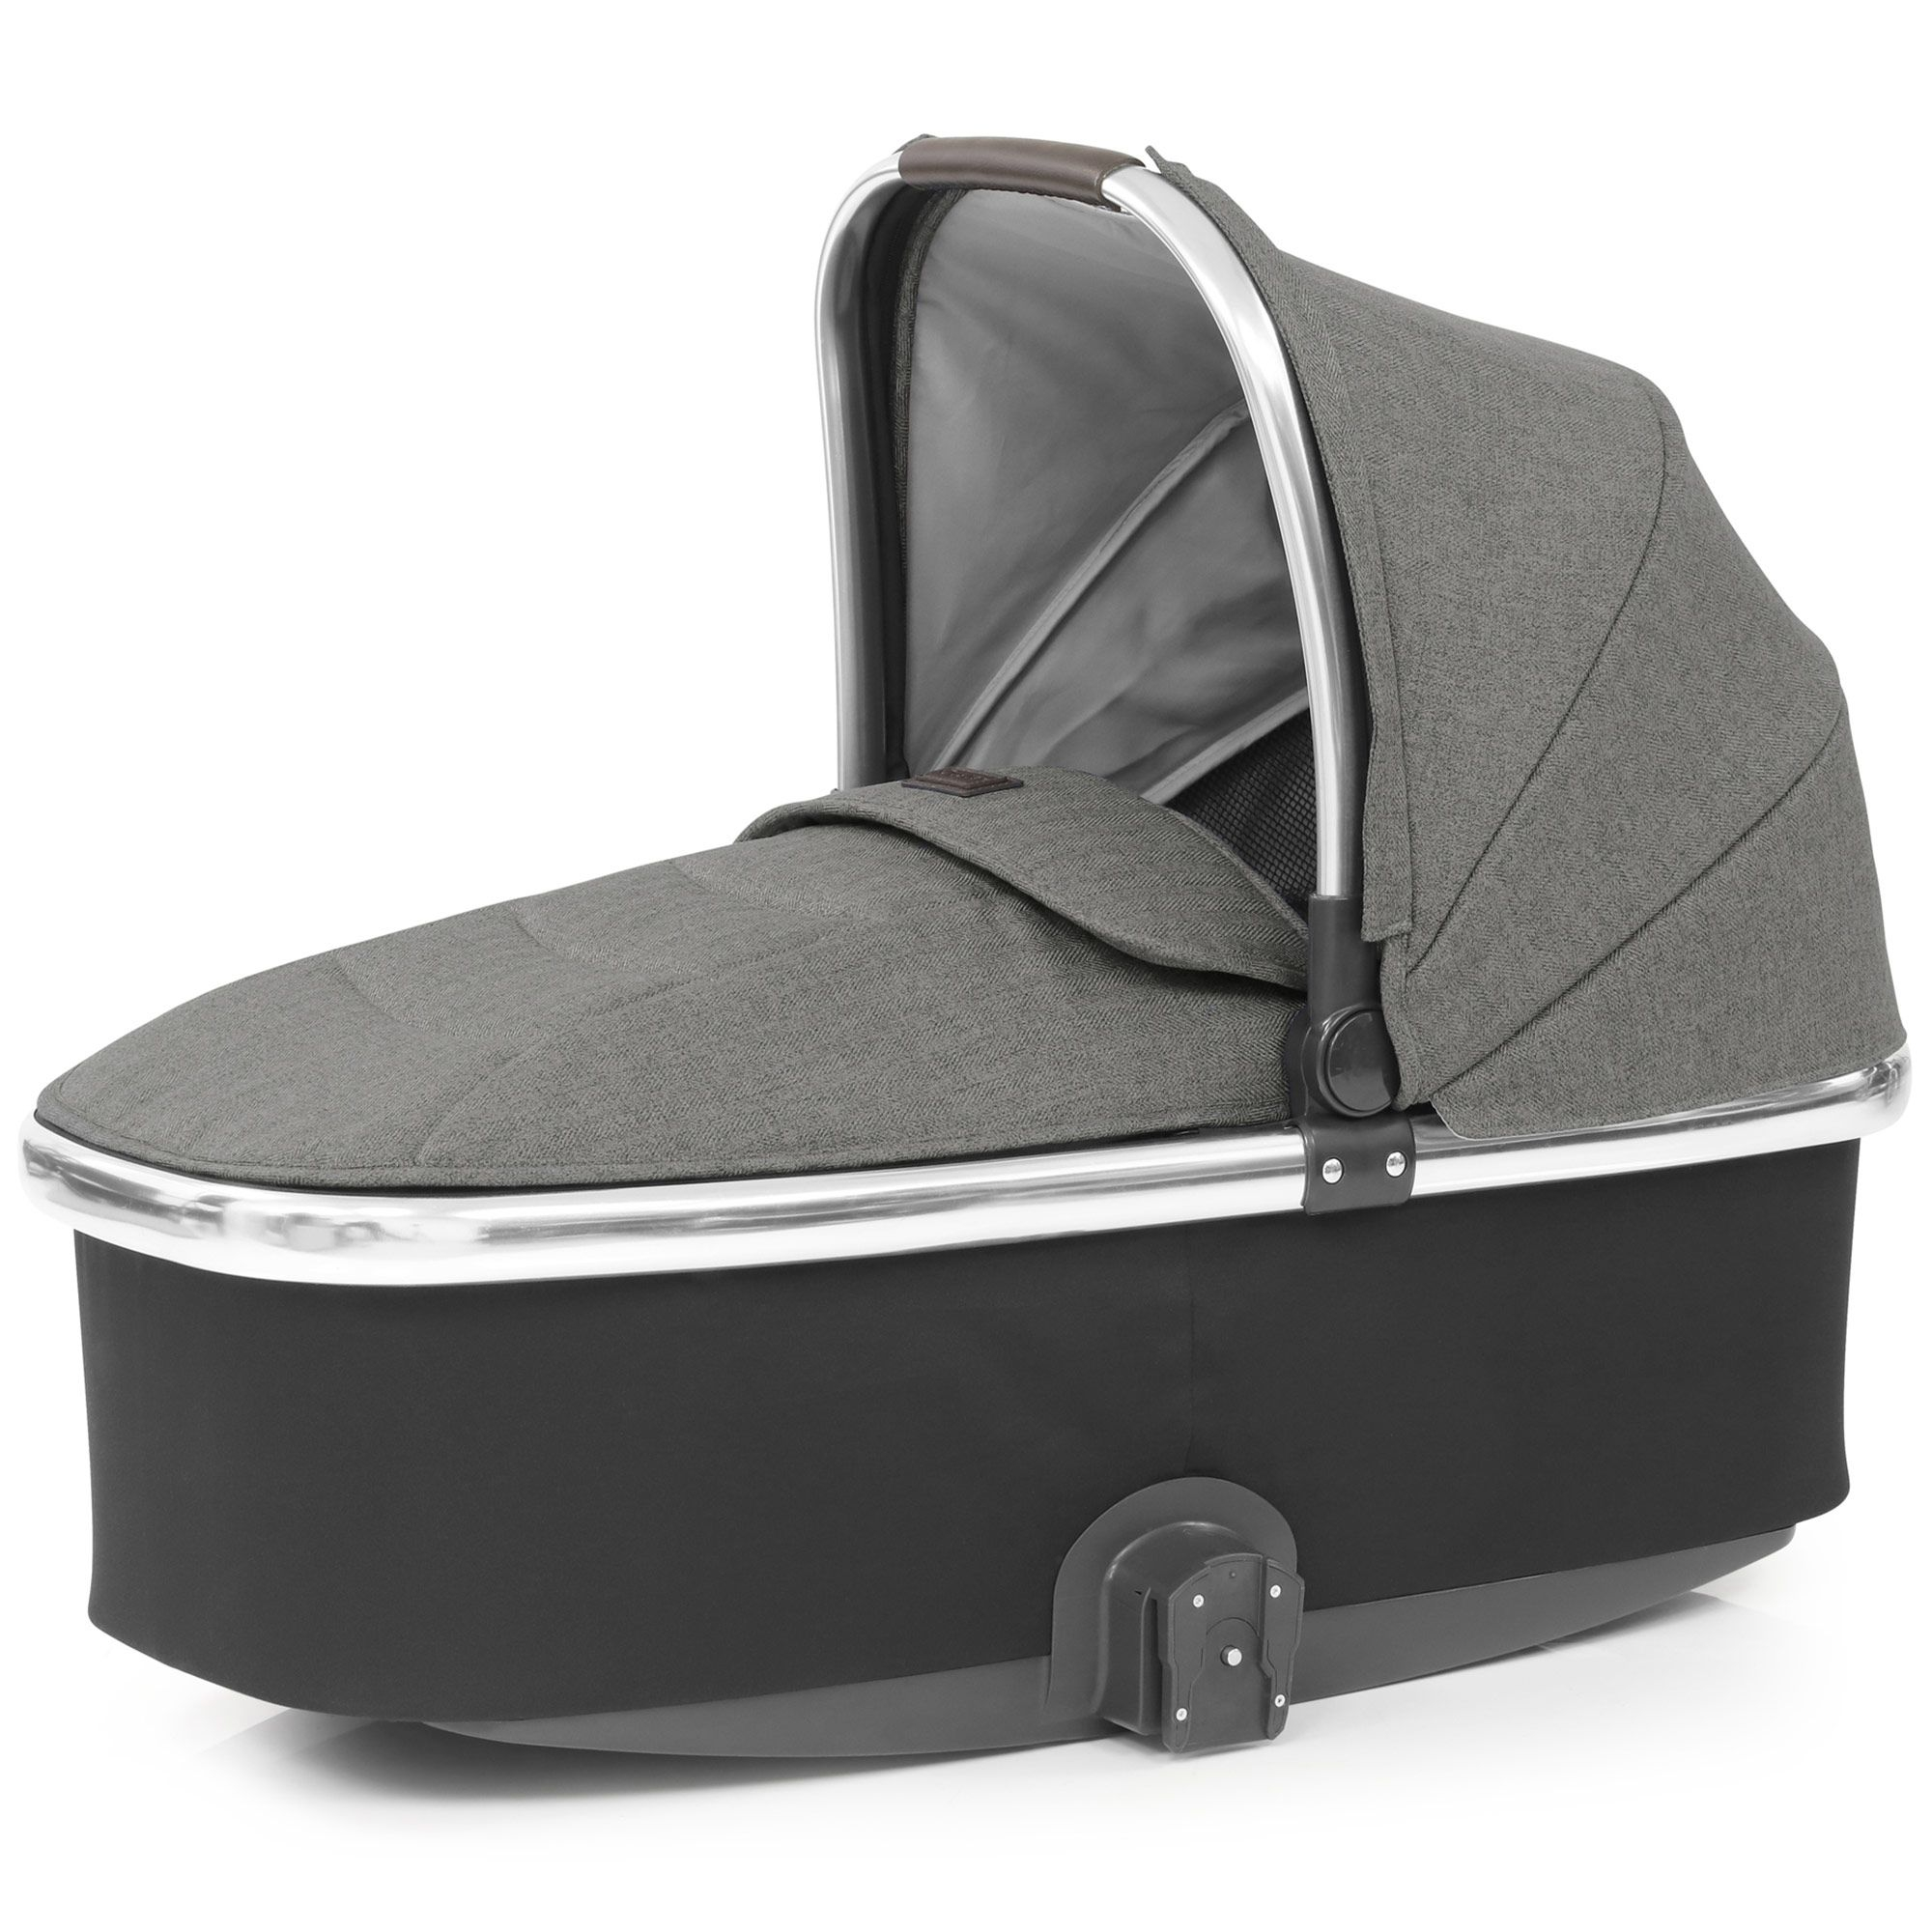 Oyster O3CCMM Oyster 3 Mirror Finish Carrycot Mercury